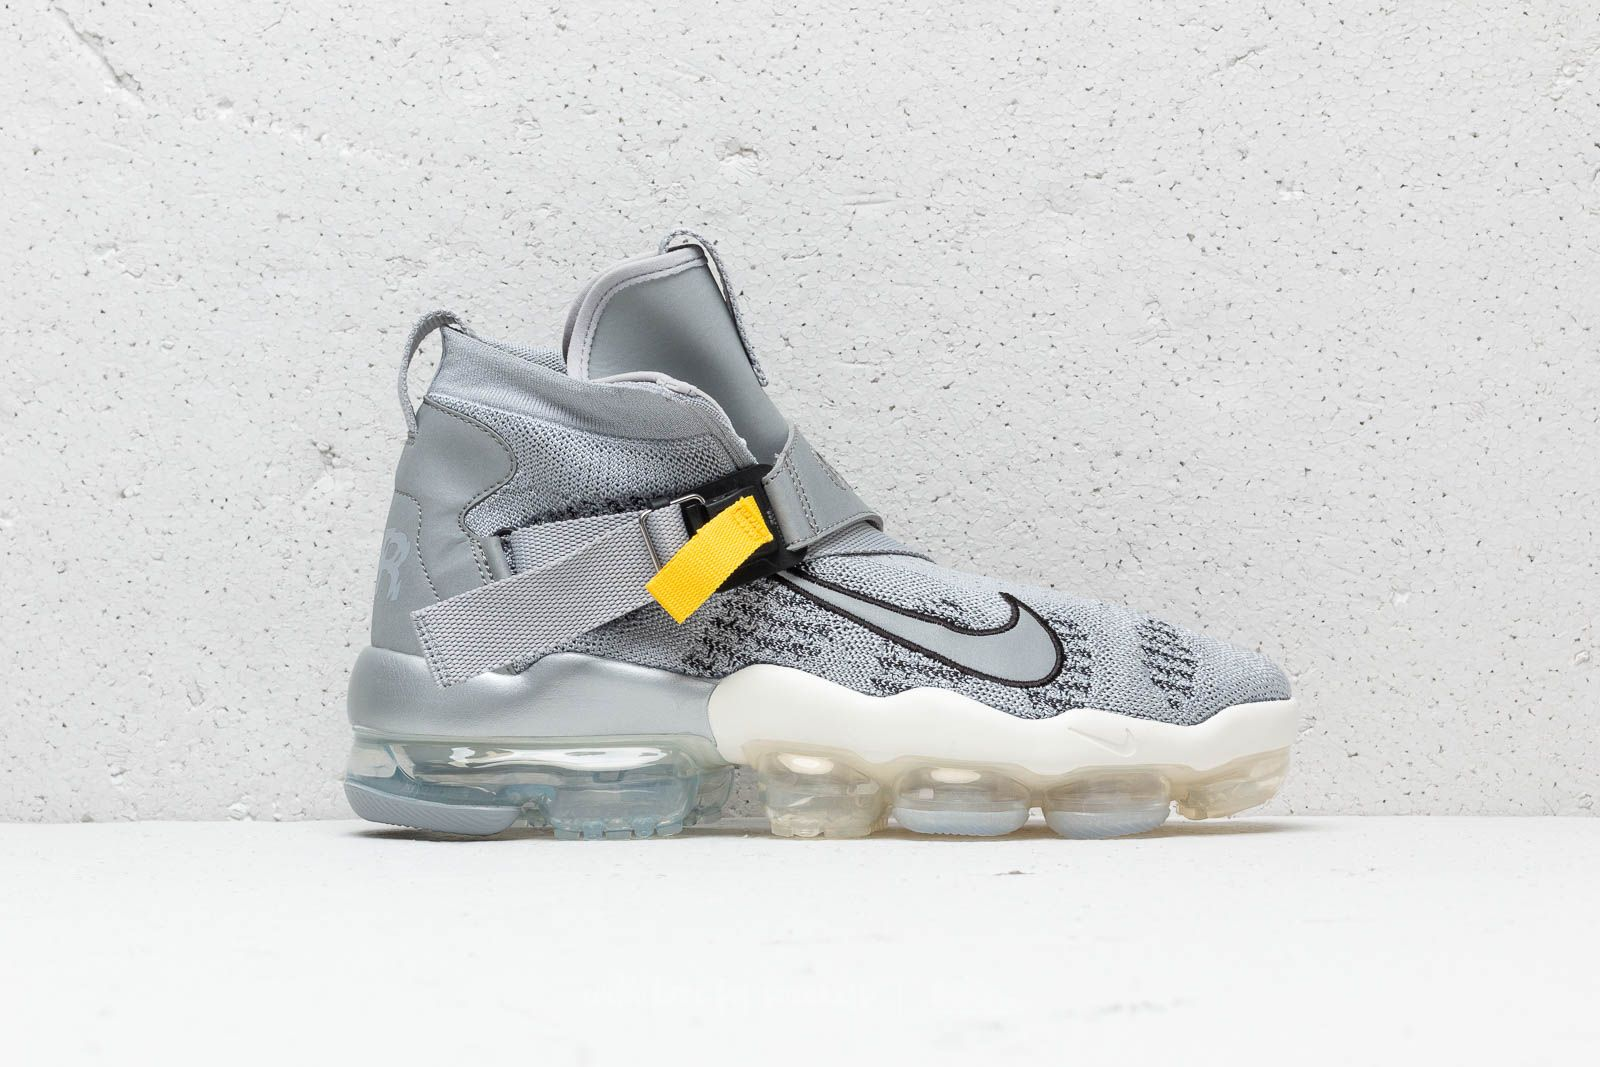 b4518689923b Nike Air Vapormax Premier Flyknit Wolf Grey  Metallic Silver at a great  price  267 buy